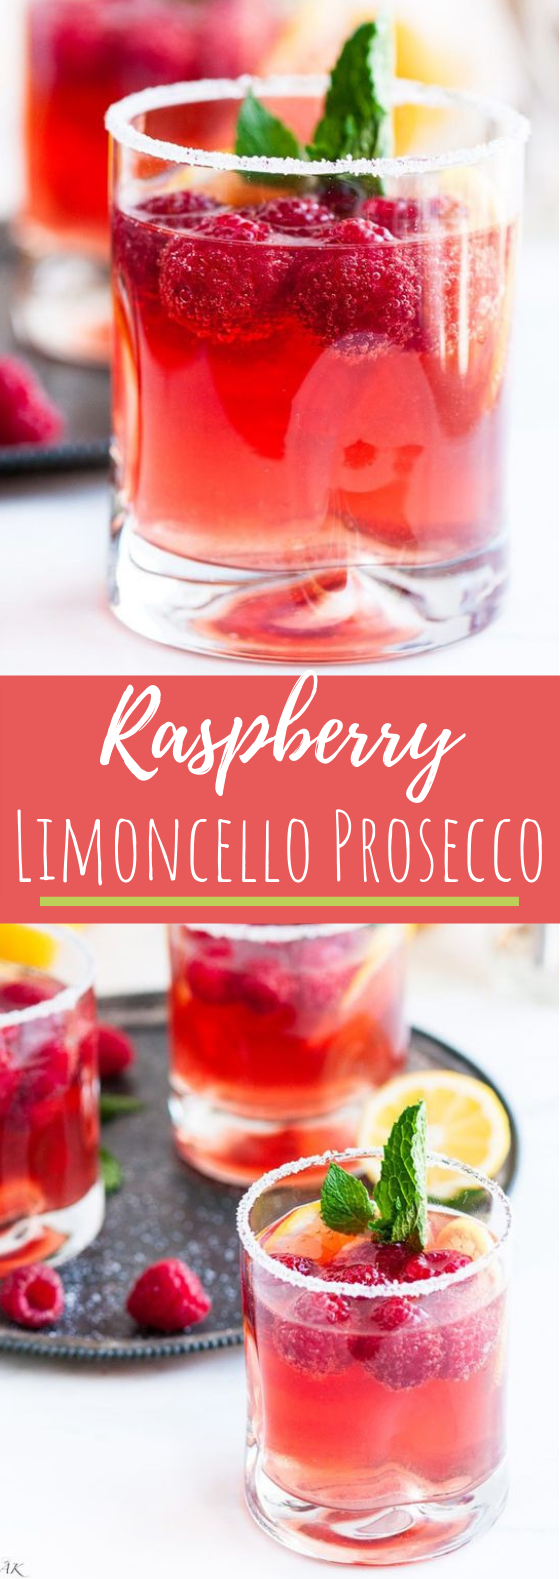 Raspberry Limoncello Prosecco #drink #cocktails